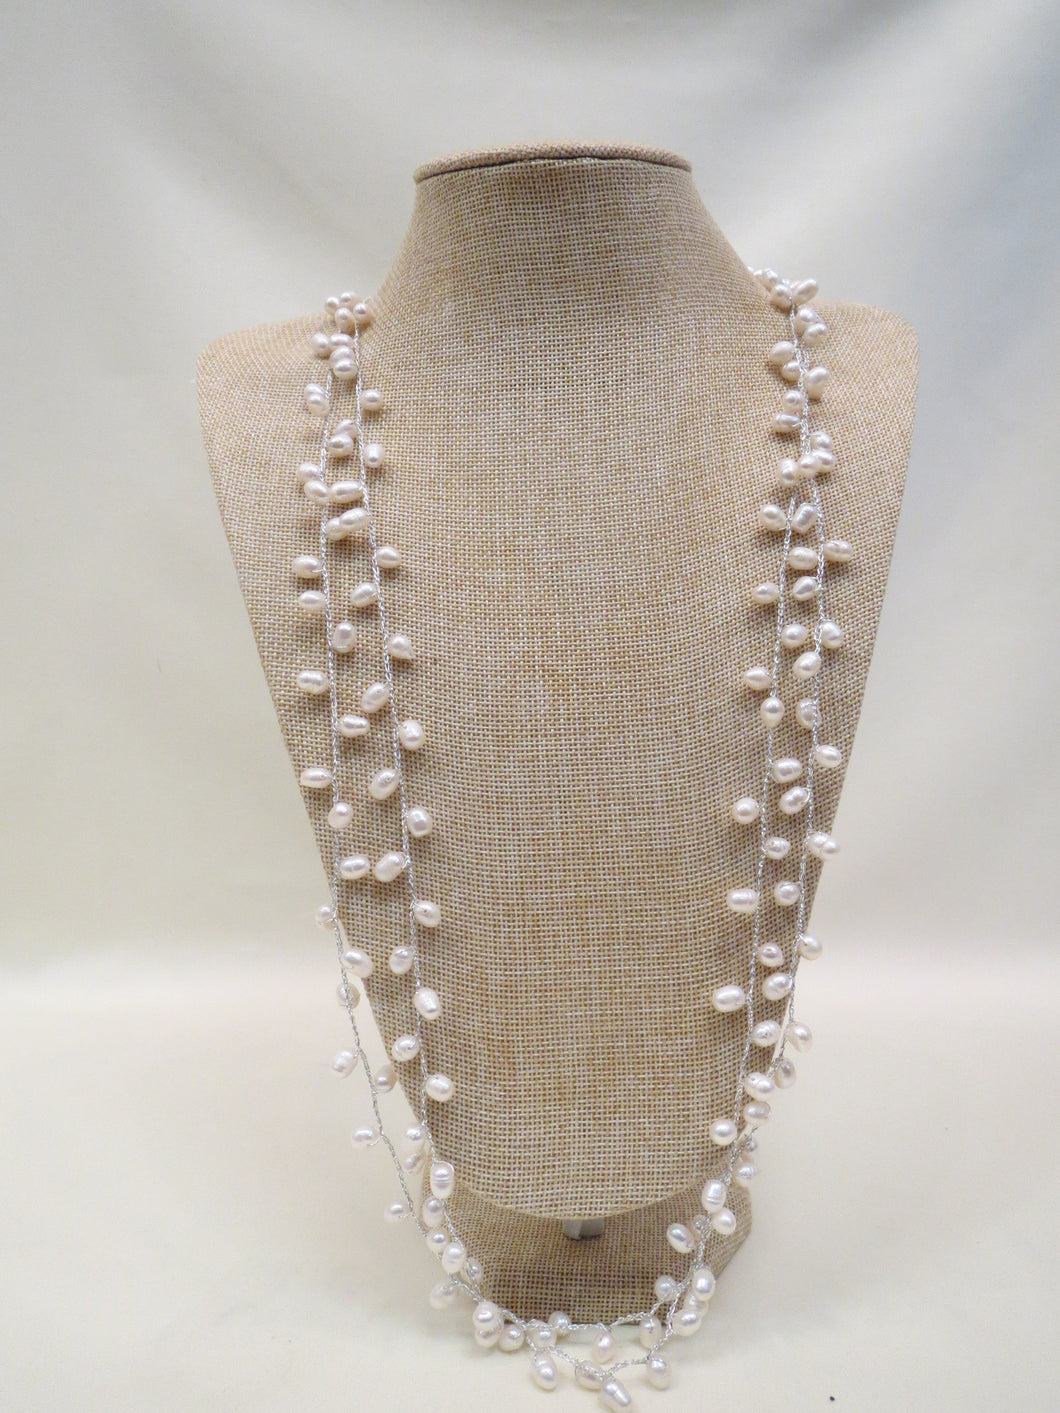 ADO Silver Thread Necklace w/ Pearls | All Dec'd Out